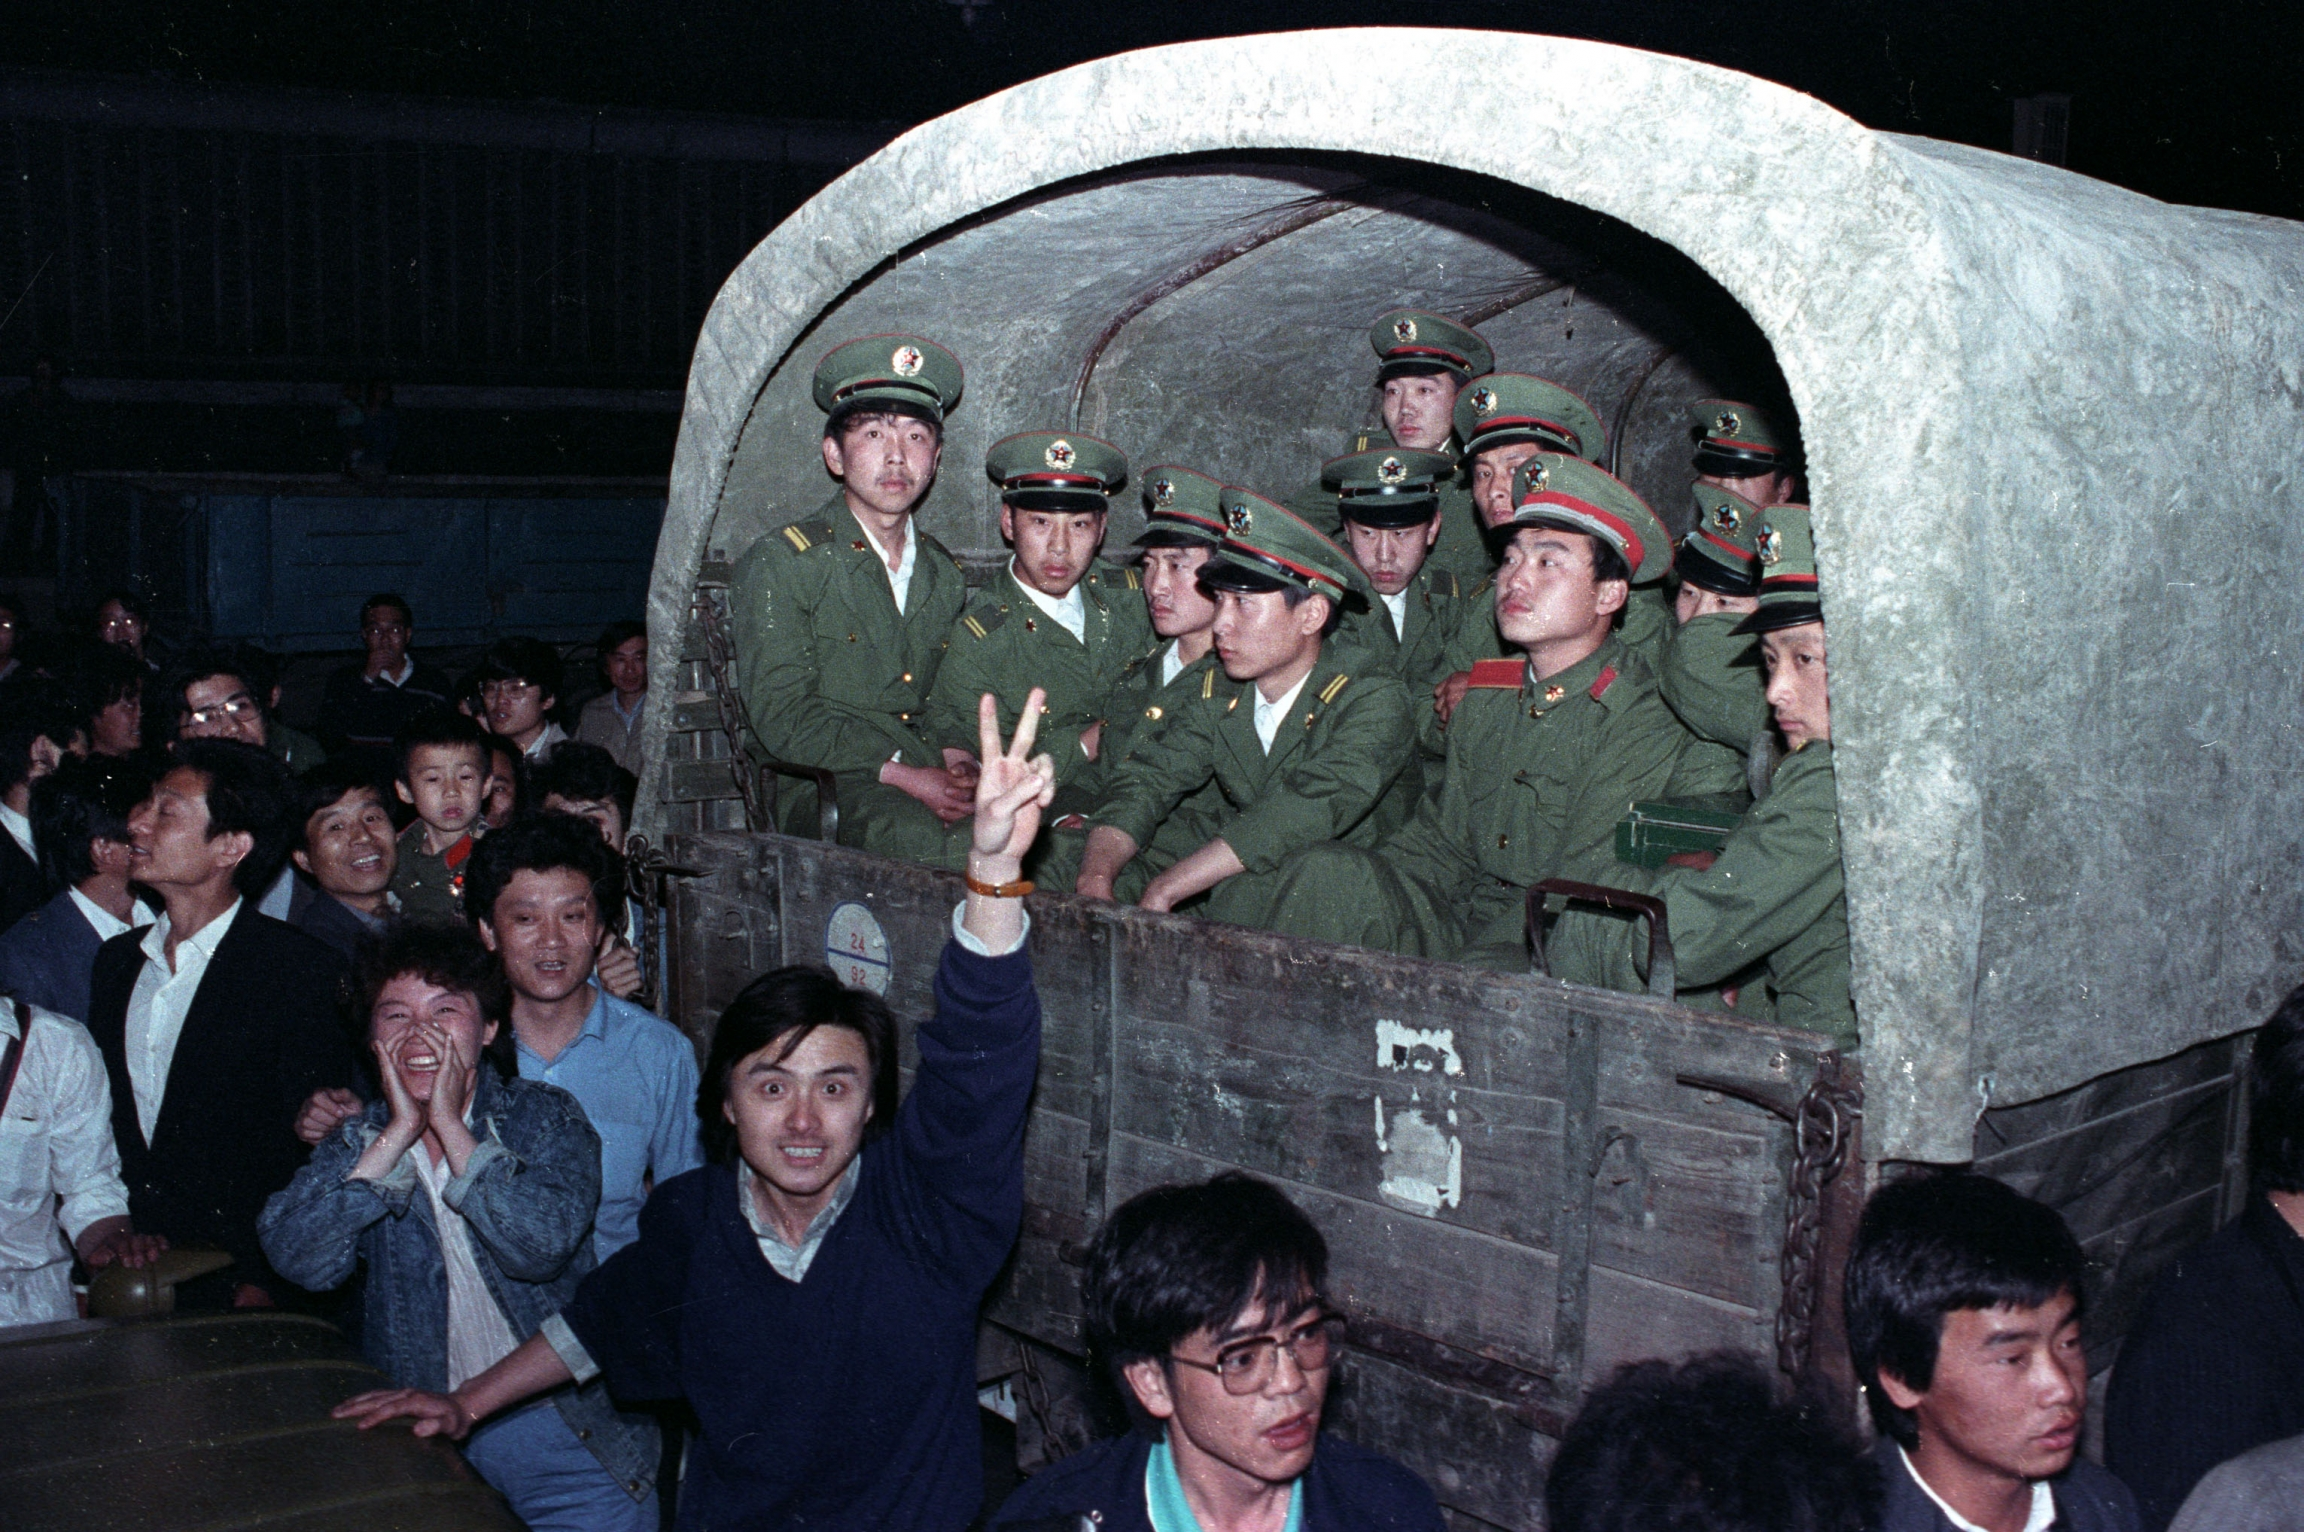 At night a group of students surround a military vehicle.